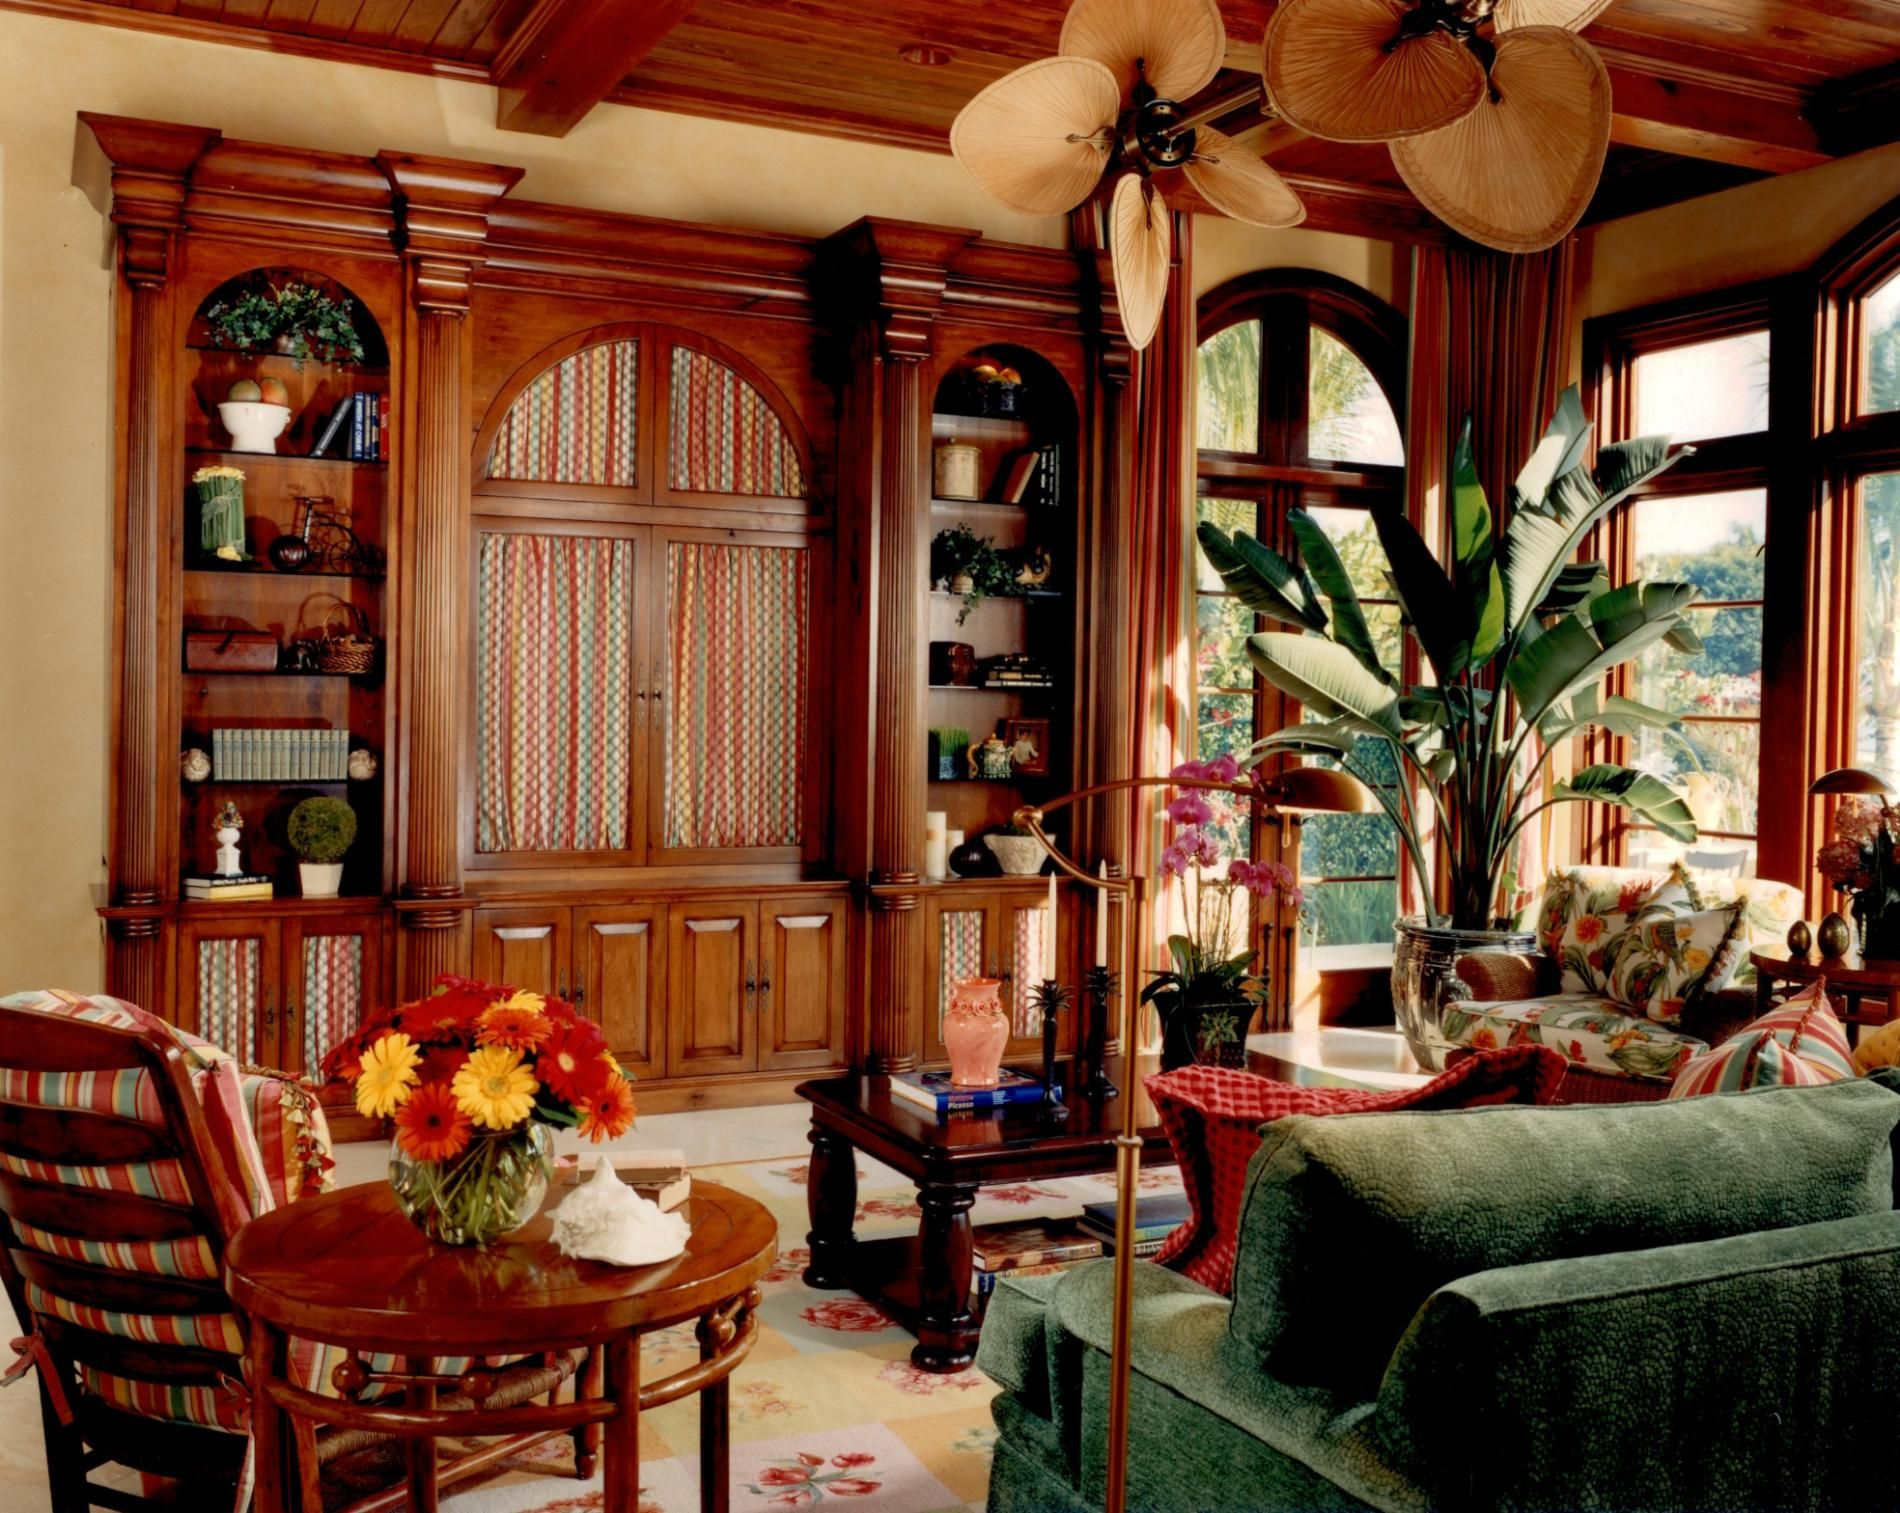 West Indies Interior Decorating Style British Colonial West Indies Living Room Caribbean Style